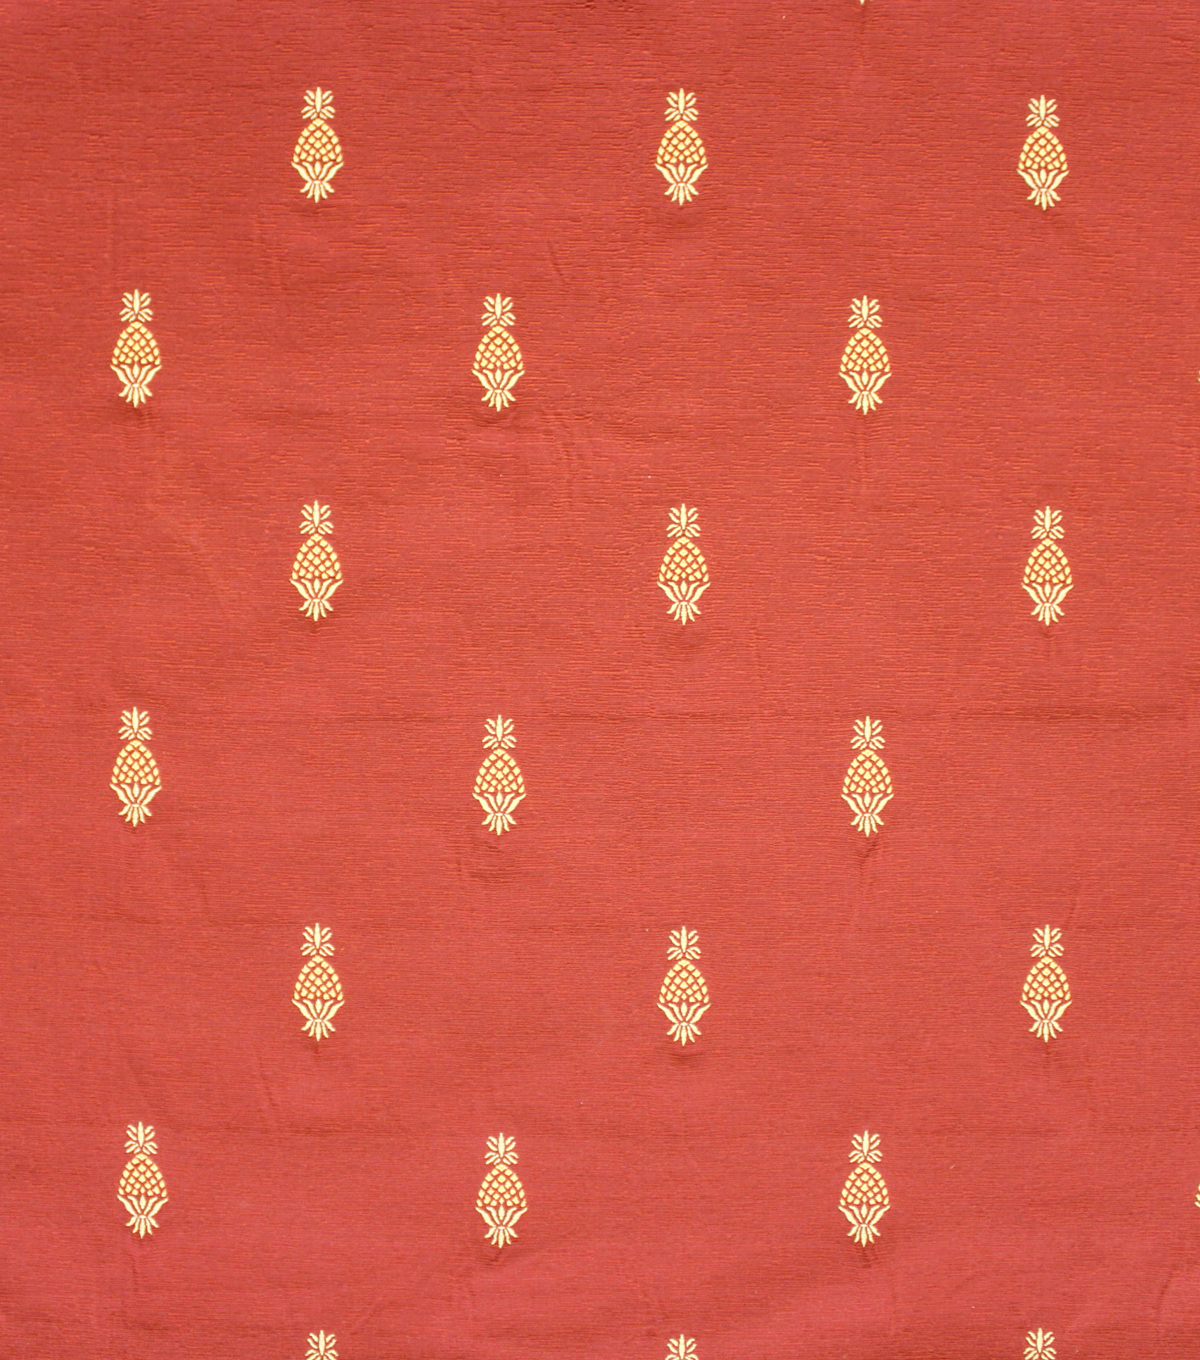 Home Decor 8\u0022x8\u0022 Fabric Swatch-Upholstery Fabric Barrow M6547-5296 Paprika